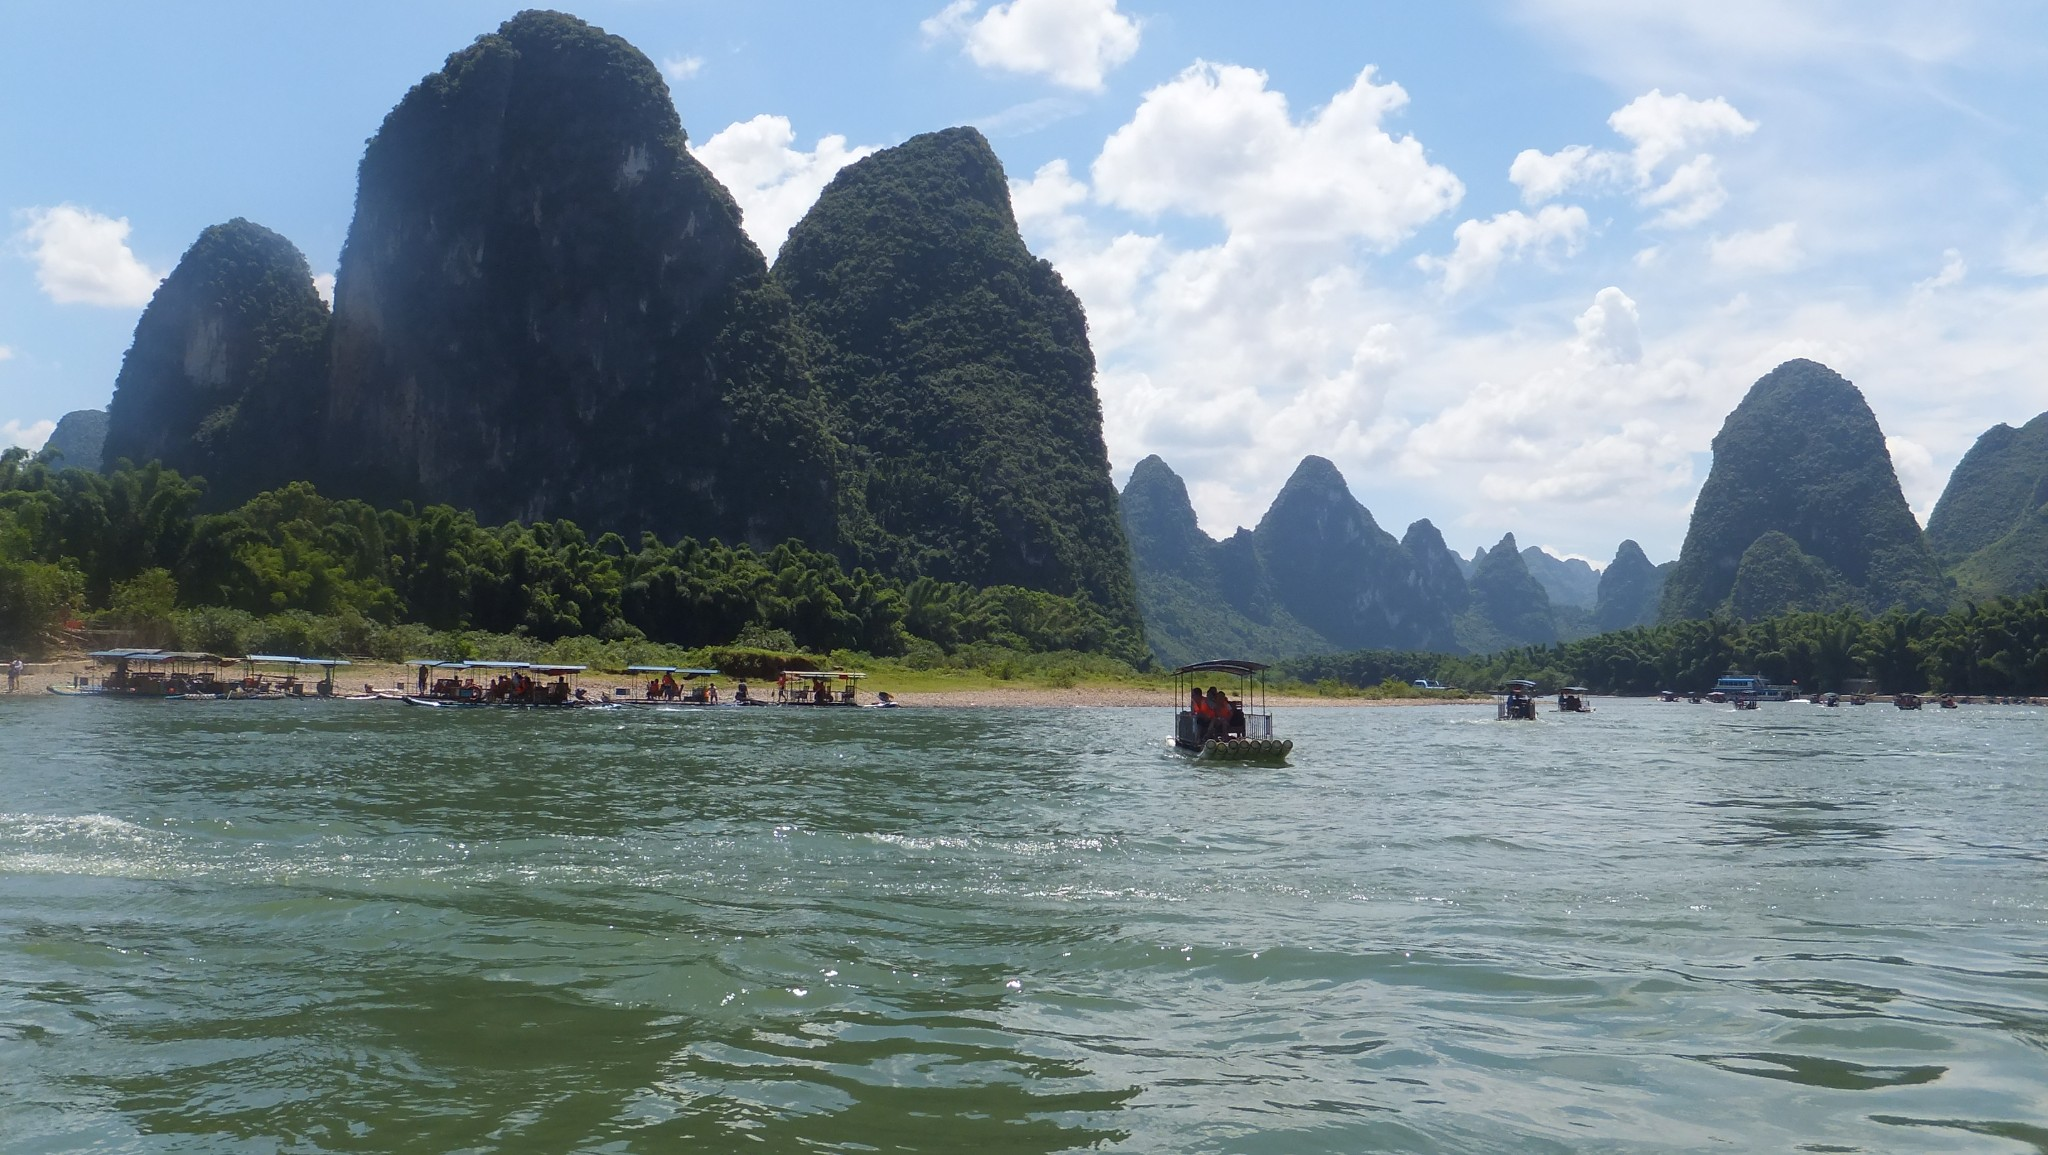 guilin li river tour